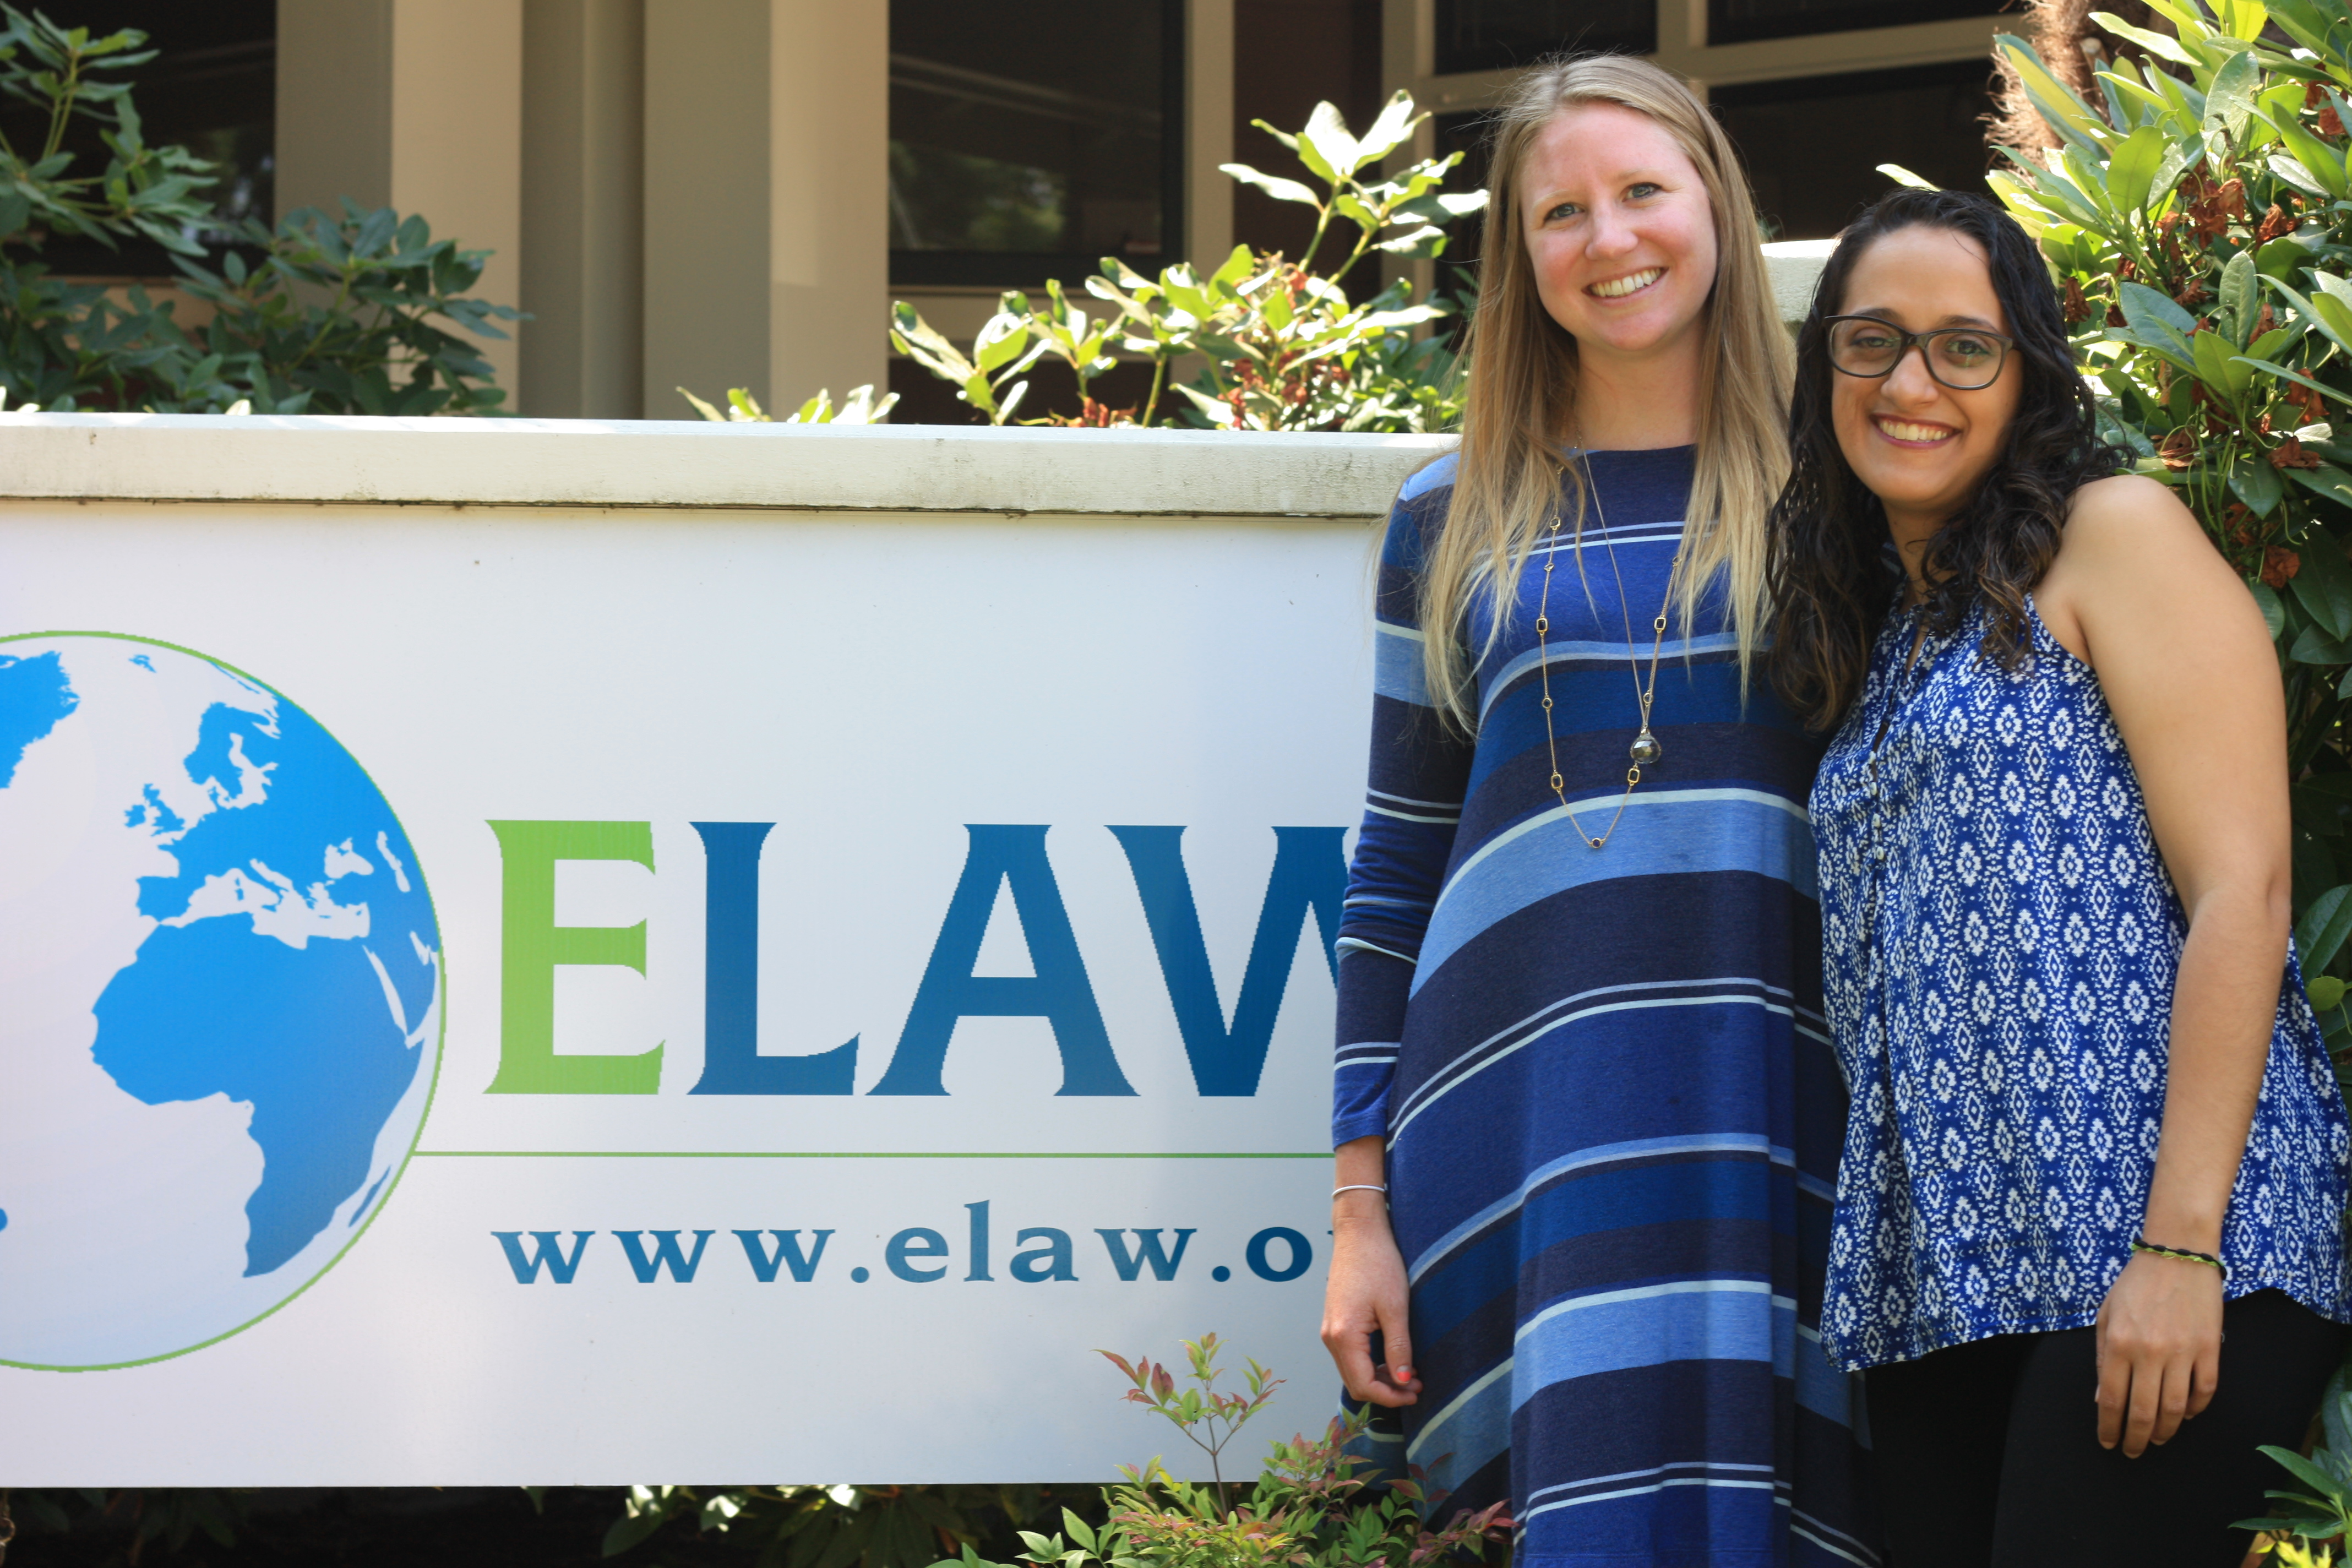 2017 ELAW Legal Interns Gina Rosario and Claire Kiss